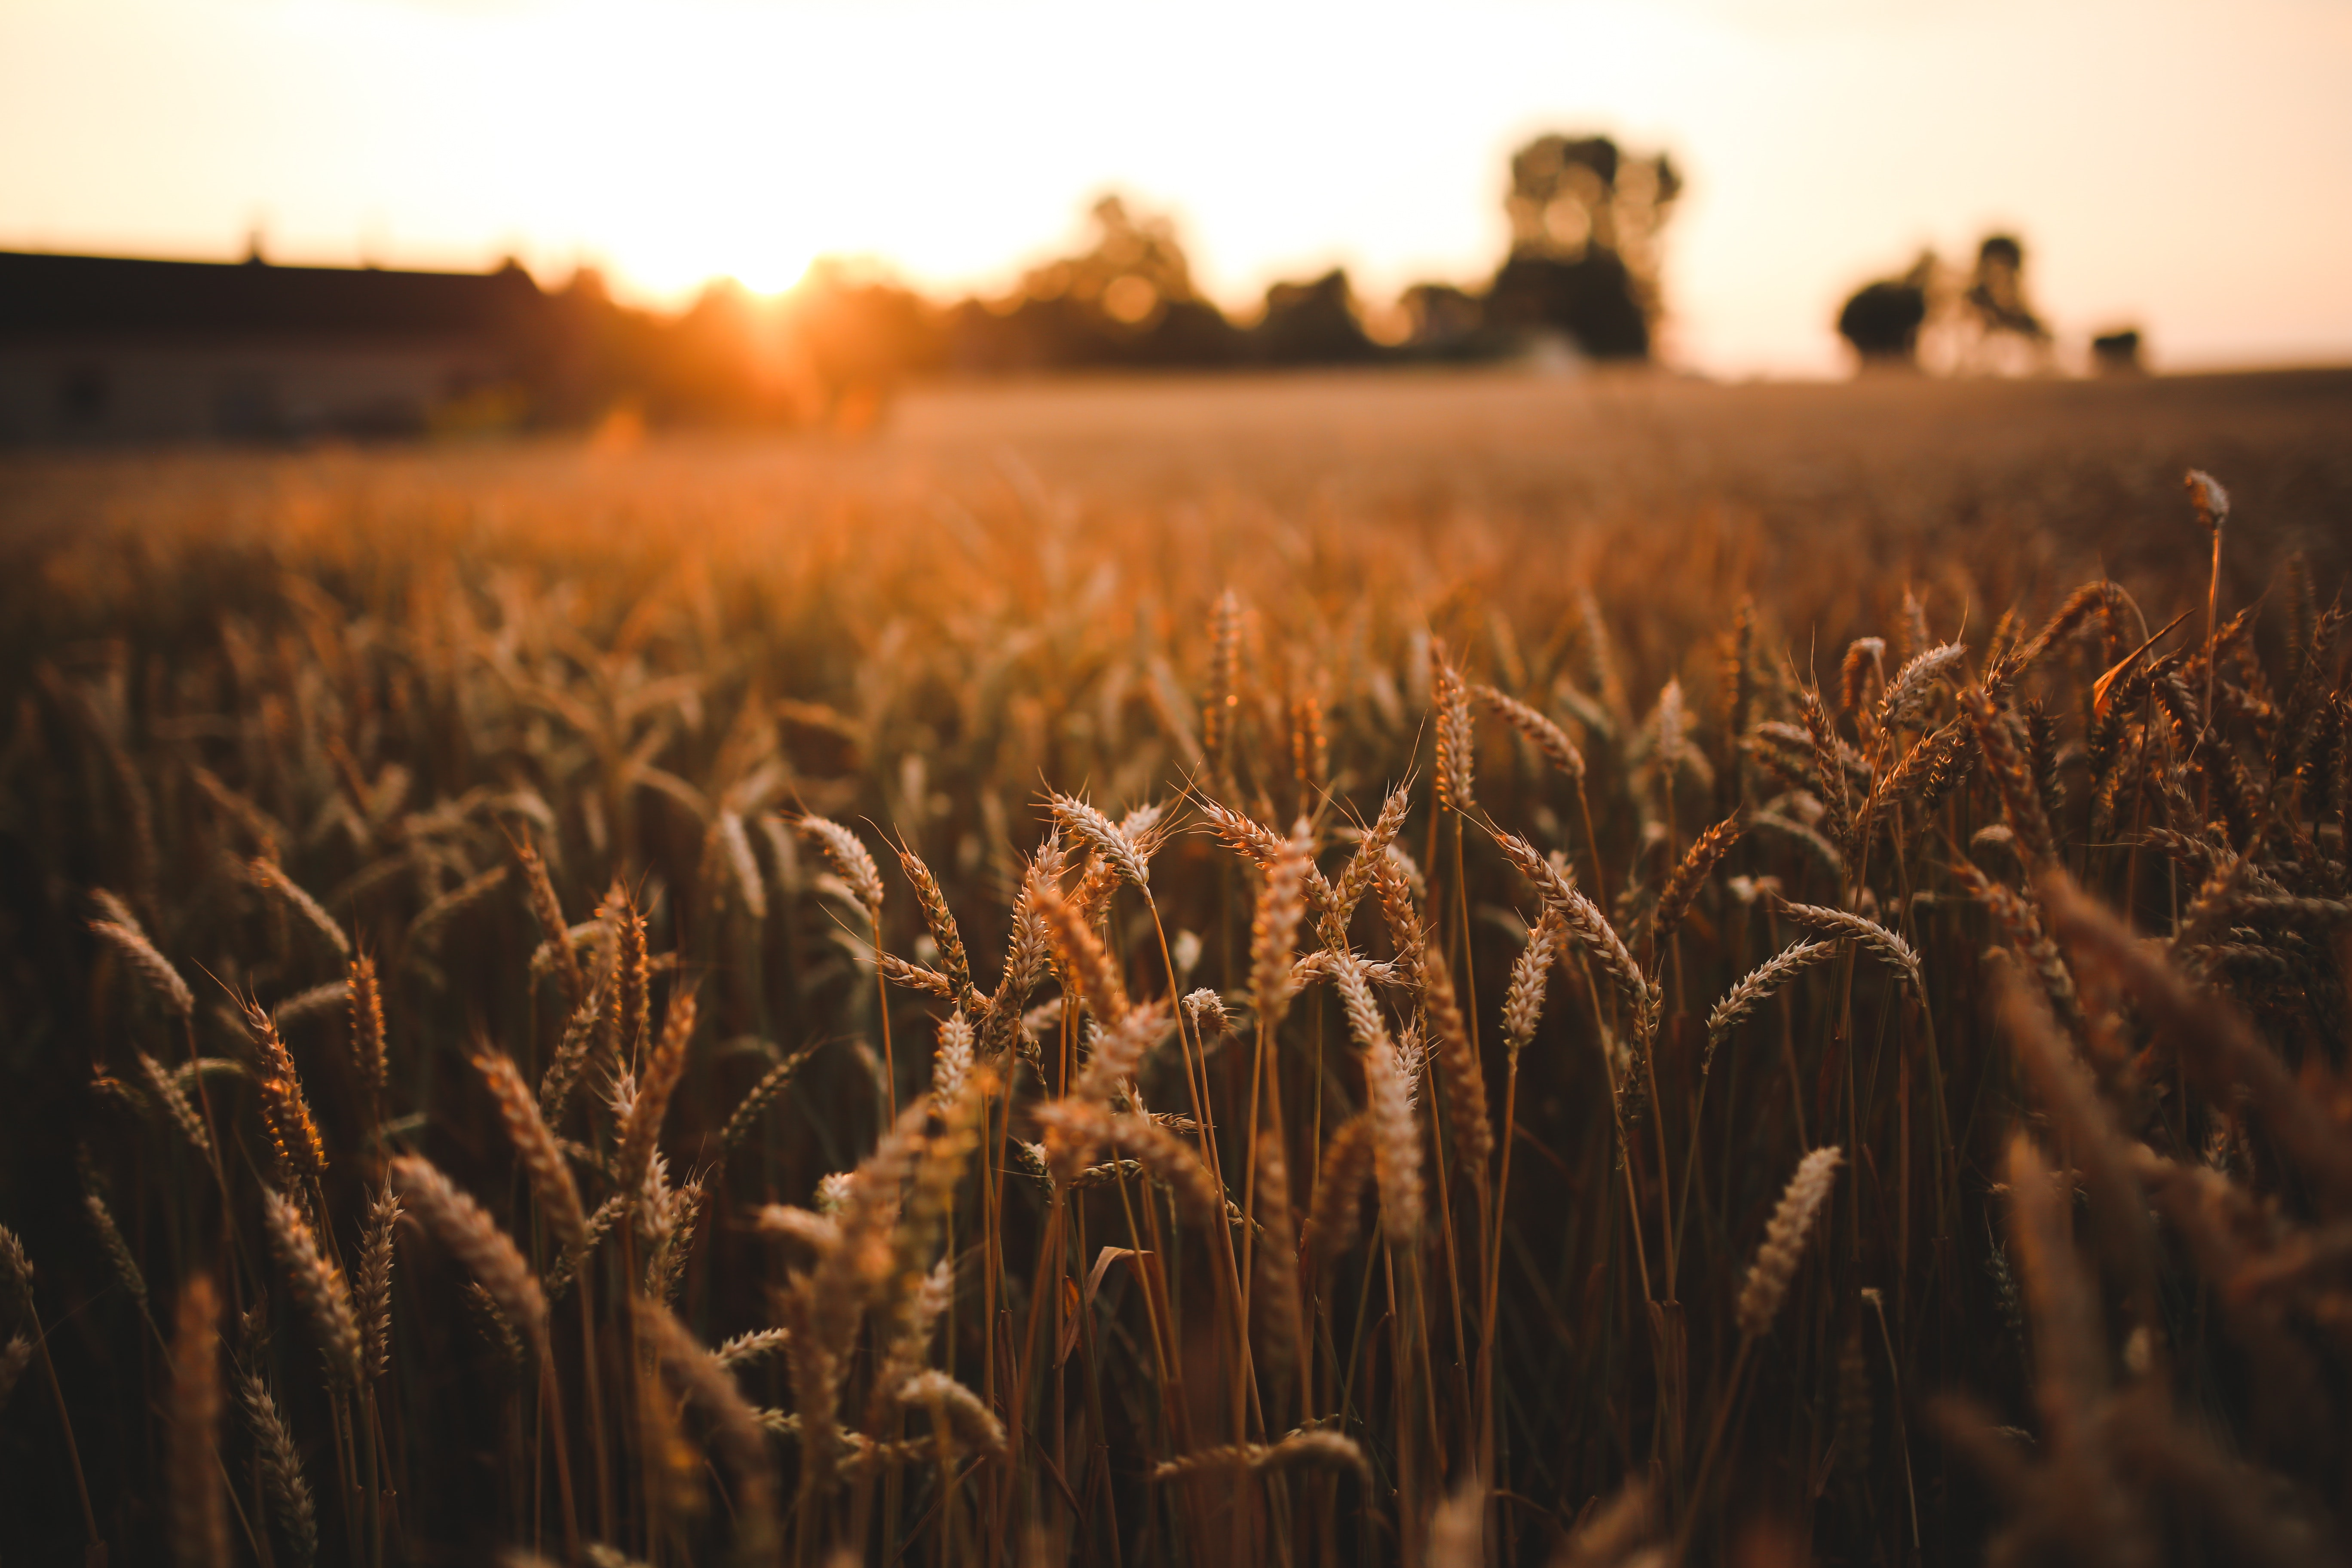 agriculture-field-grain-5980-1